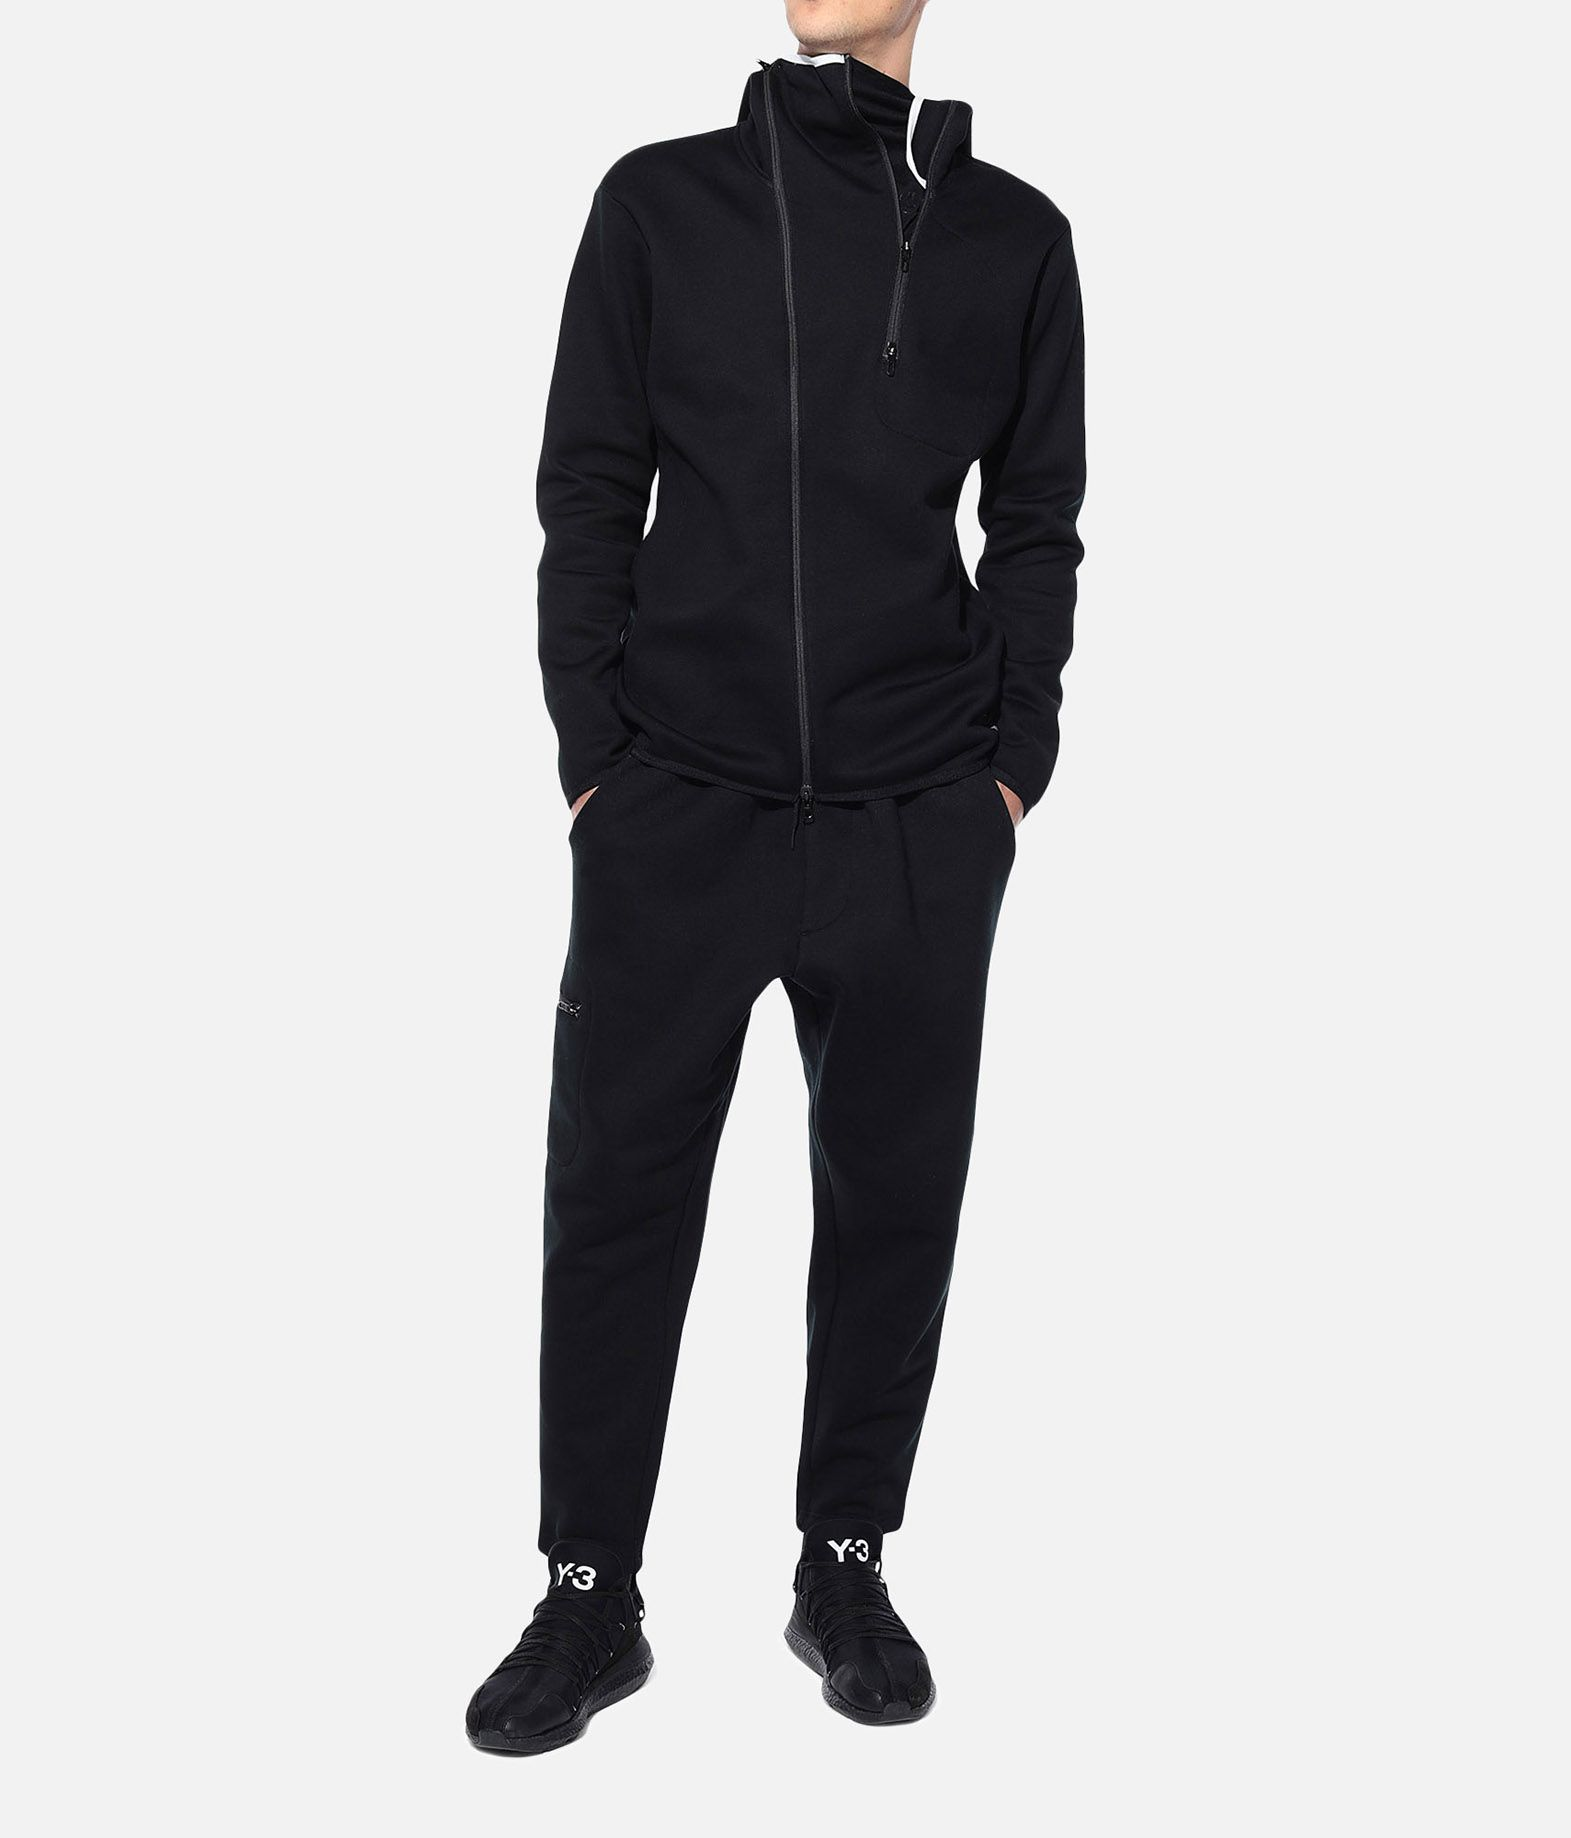 Y-3 Y-3 Binding Cargo Pants Sweatpants Man a